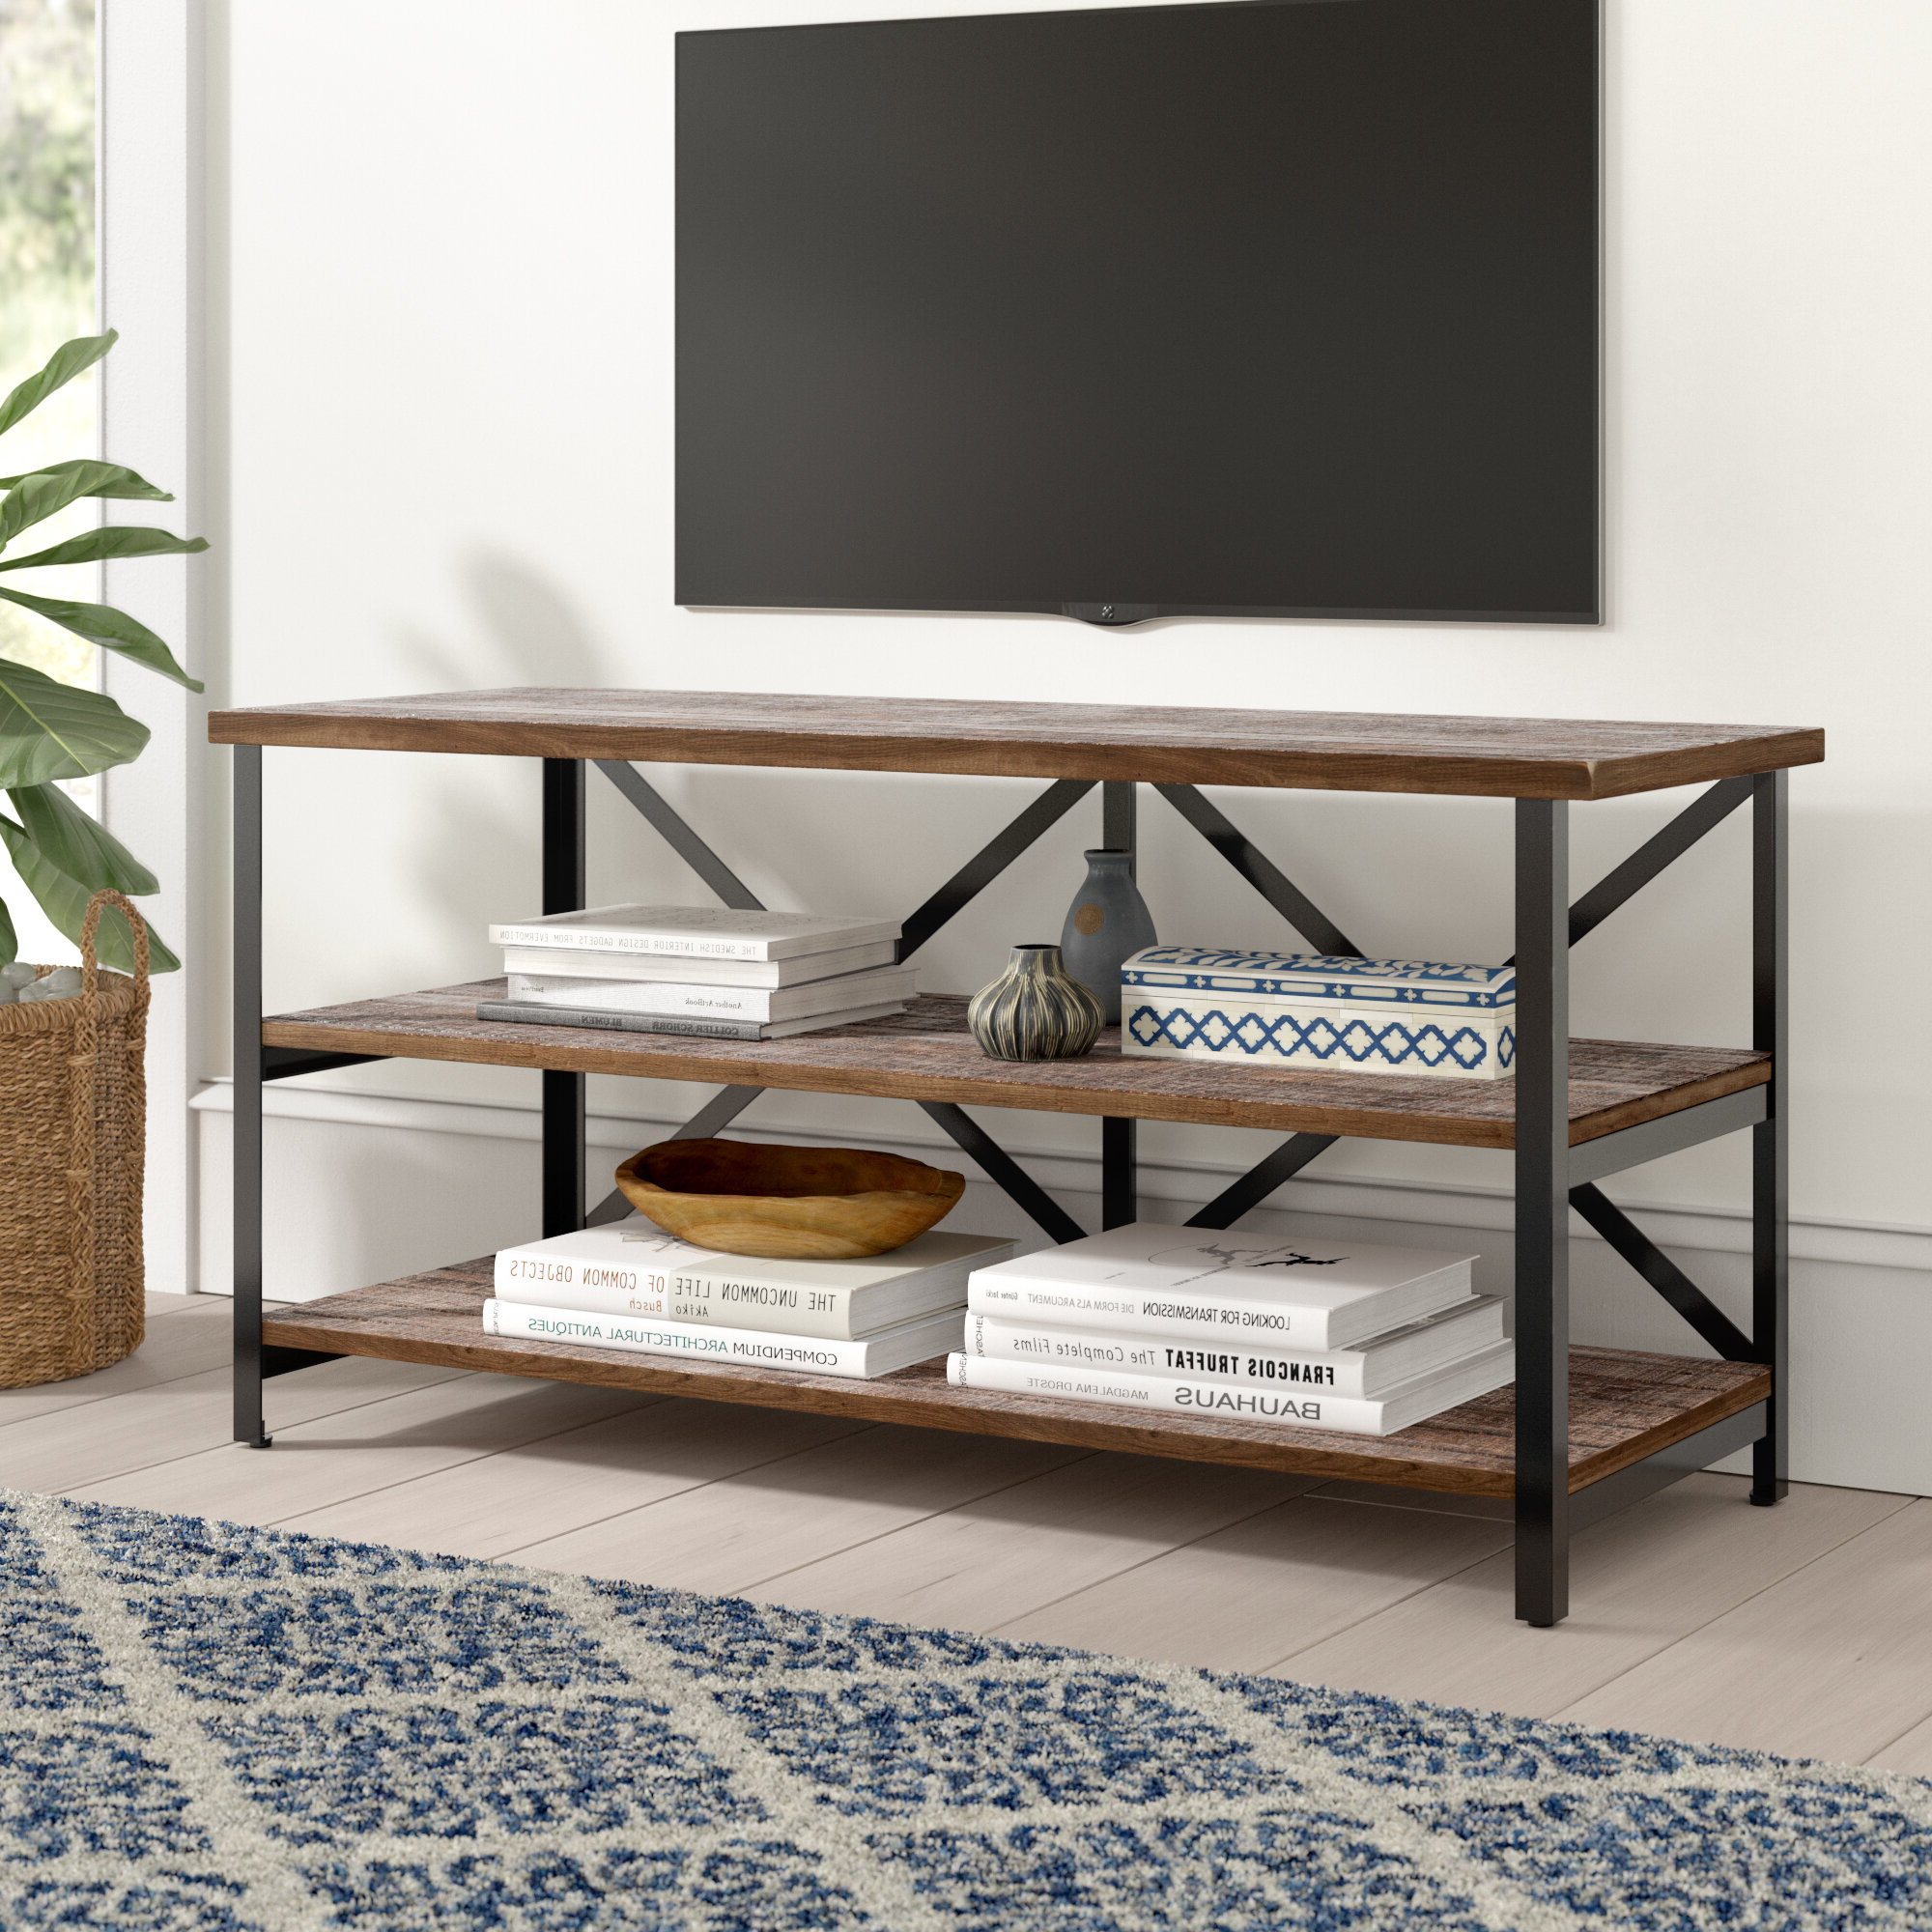 Trendy Metal Tv Stands You'll Love (View 17 of 20)